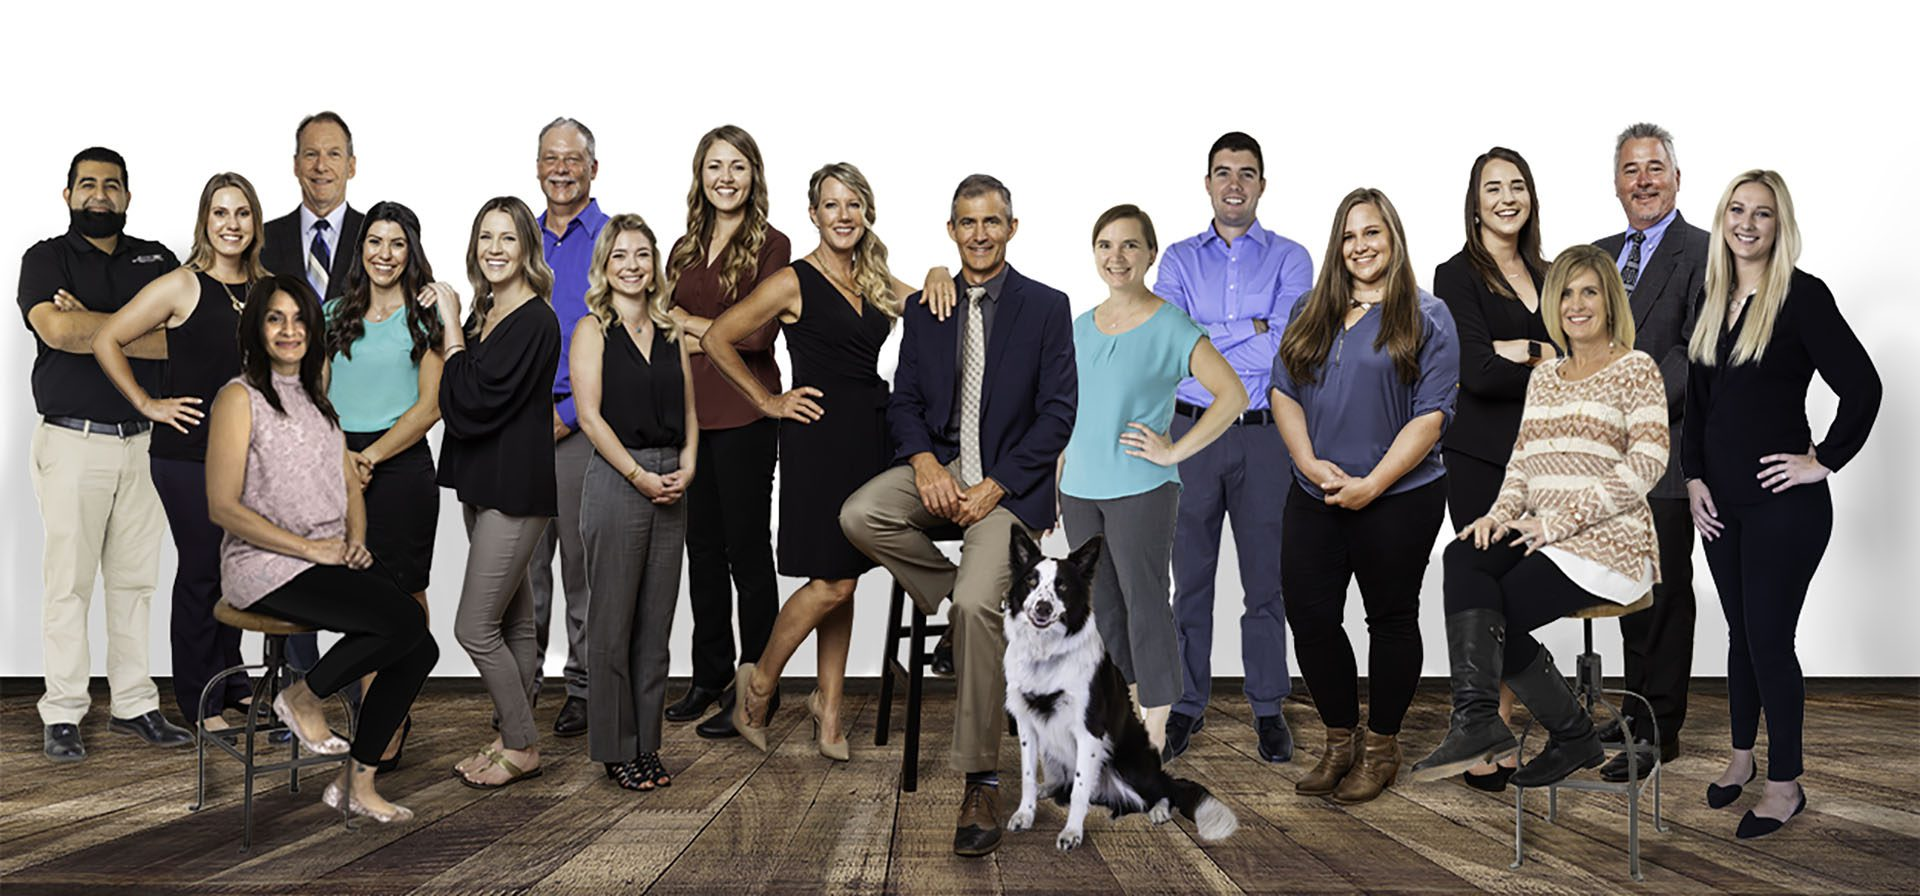 Homepage - View of Smiling Heritage Insurance Agency Team